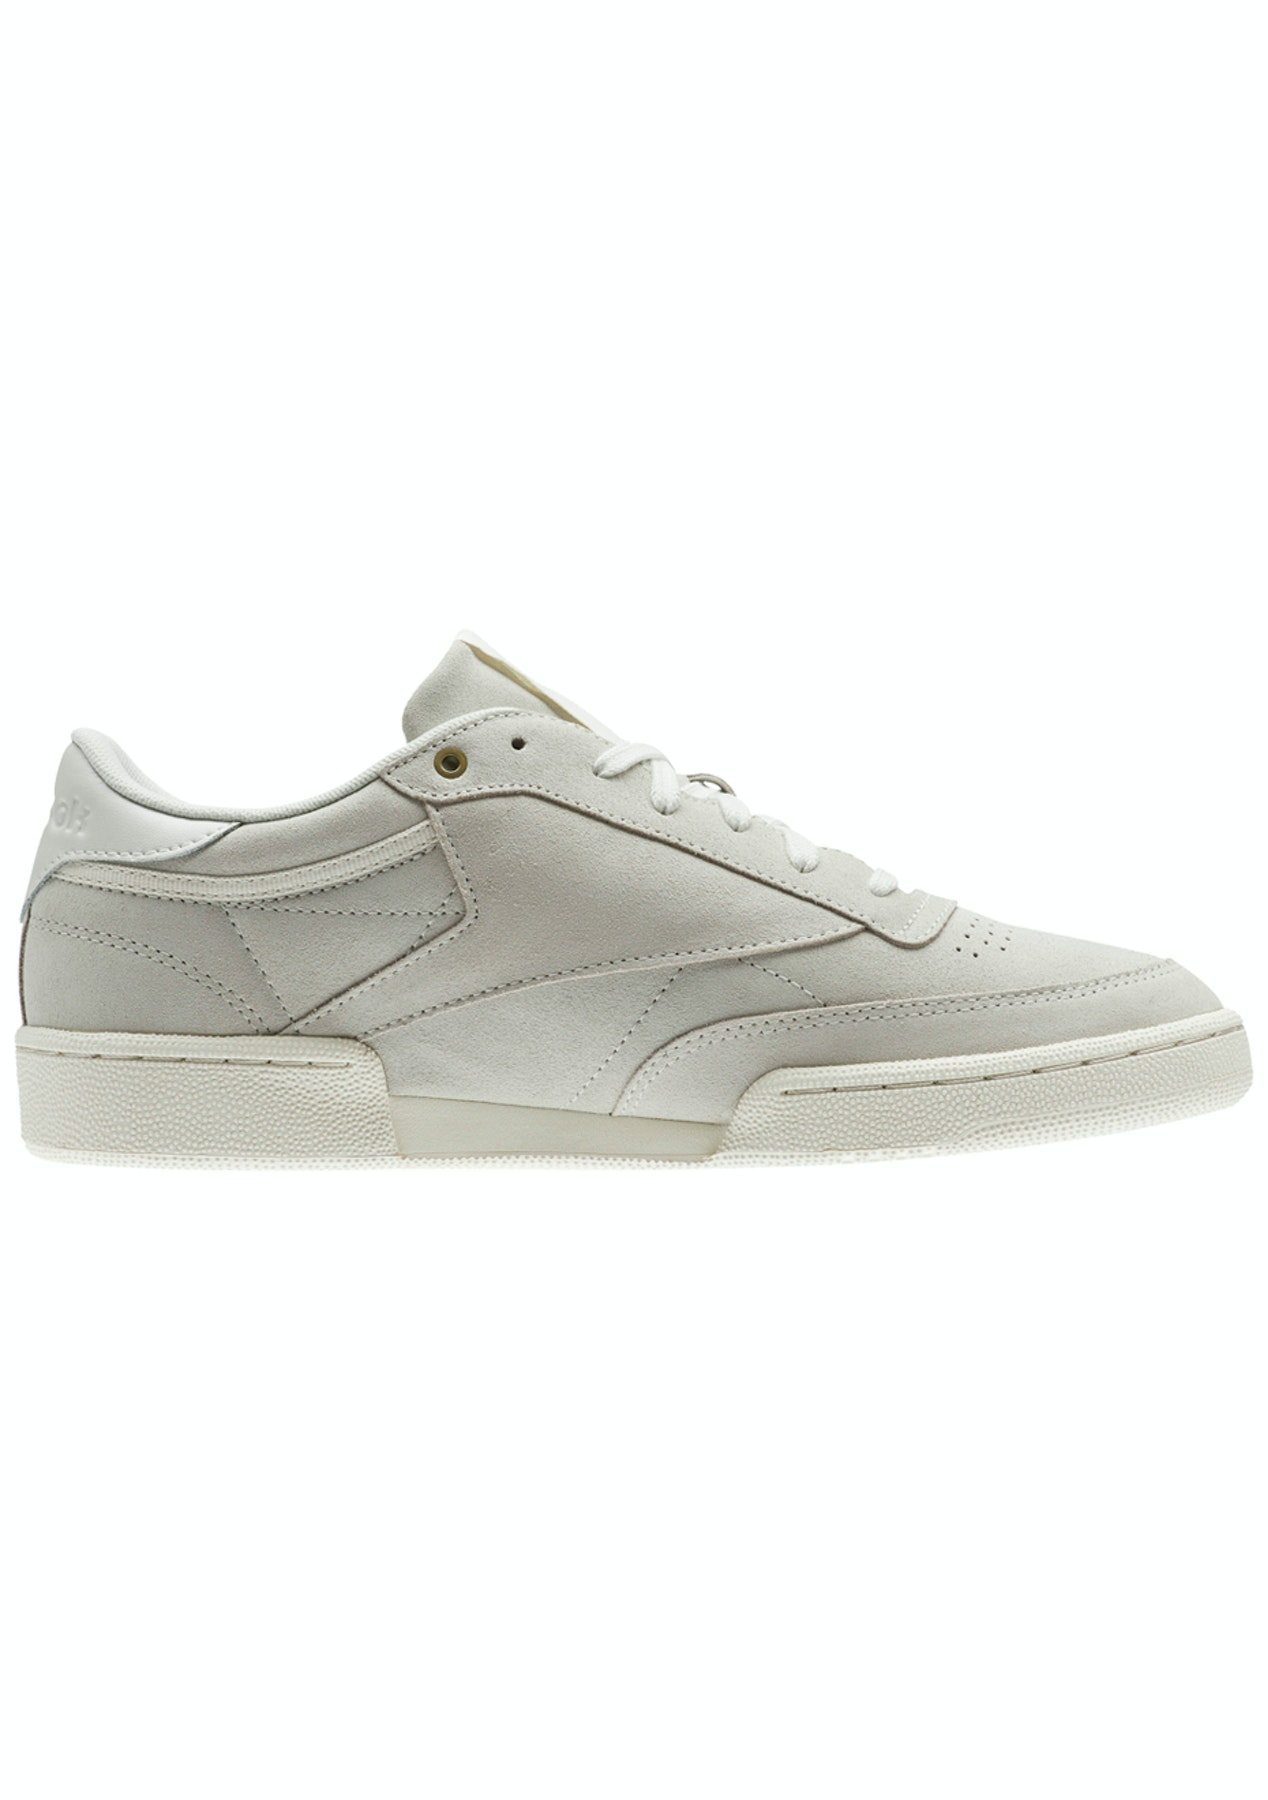 1f13add79a3c18 Reebok Womens - Club C 85 Mcc - Pebble Chalk - Outdoor Outlet - Onceit